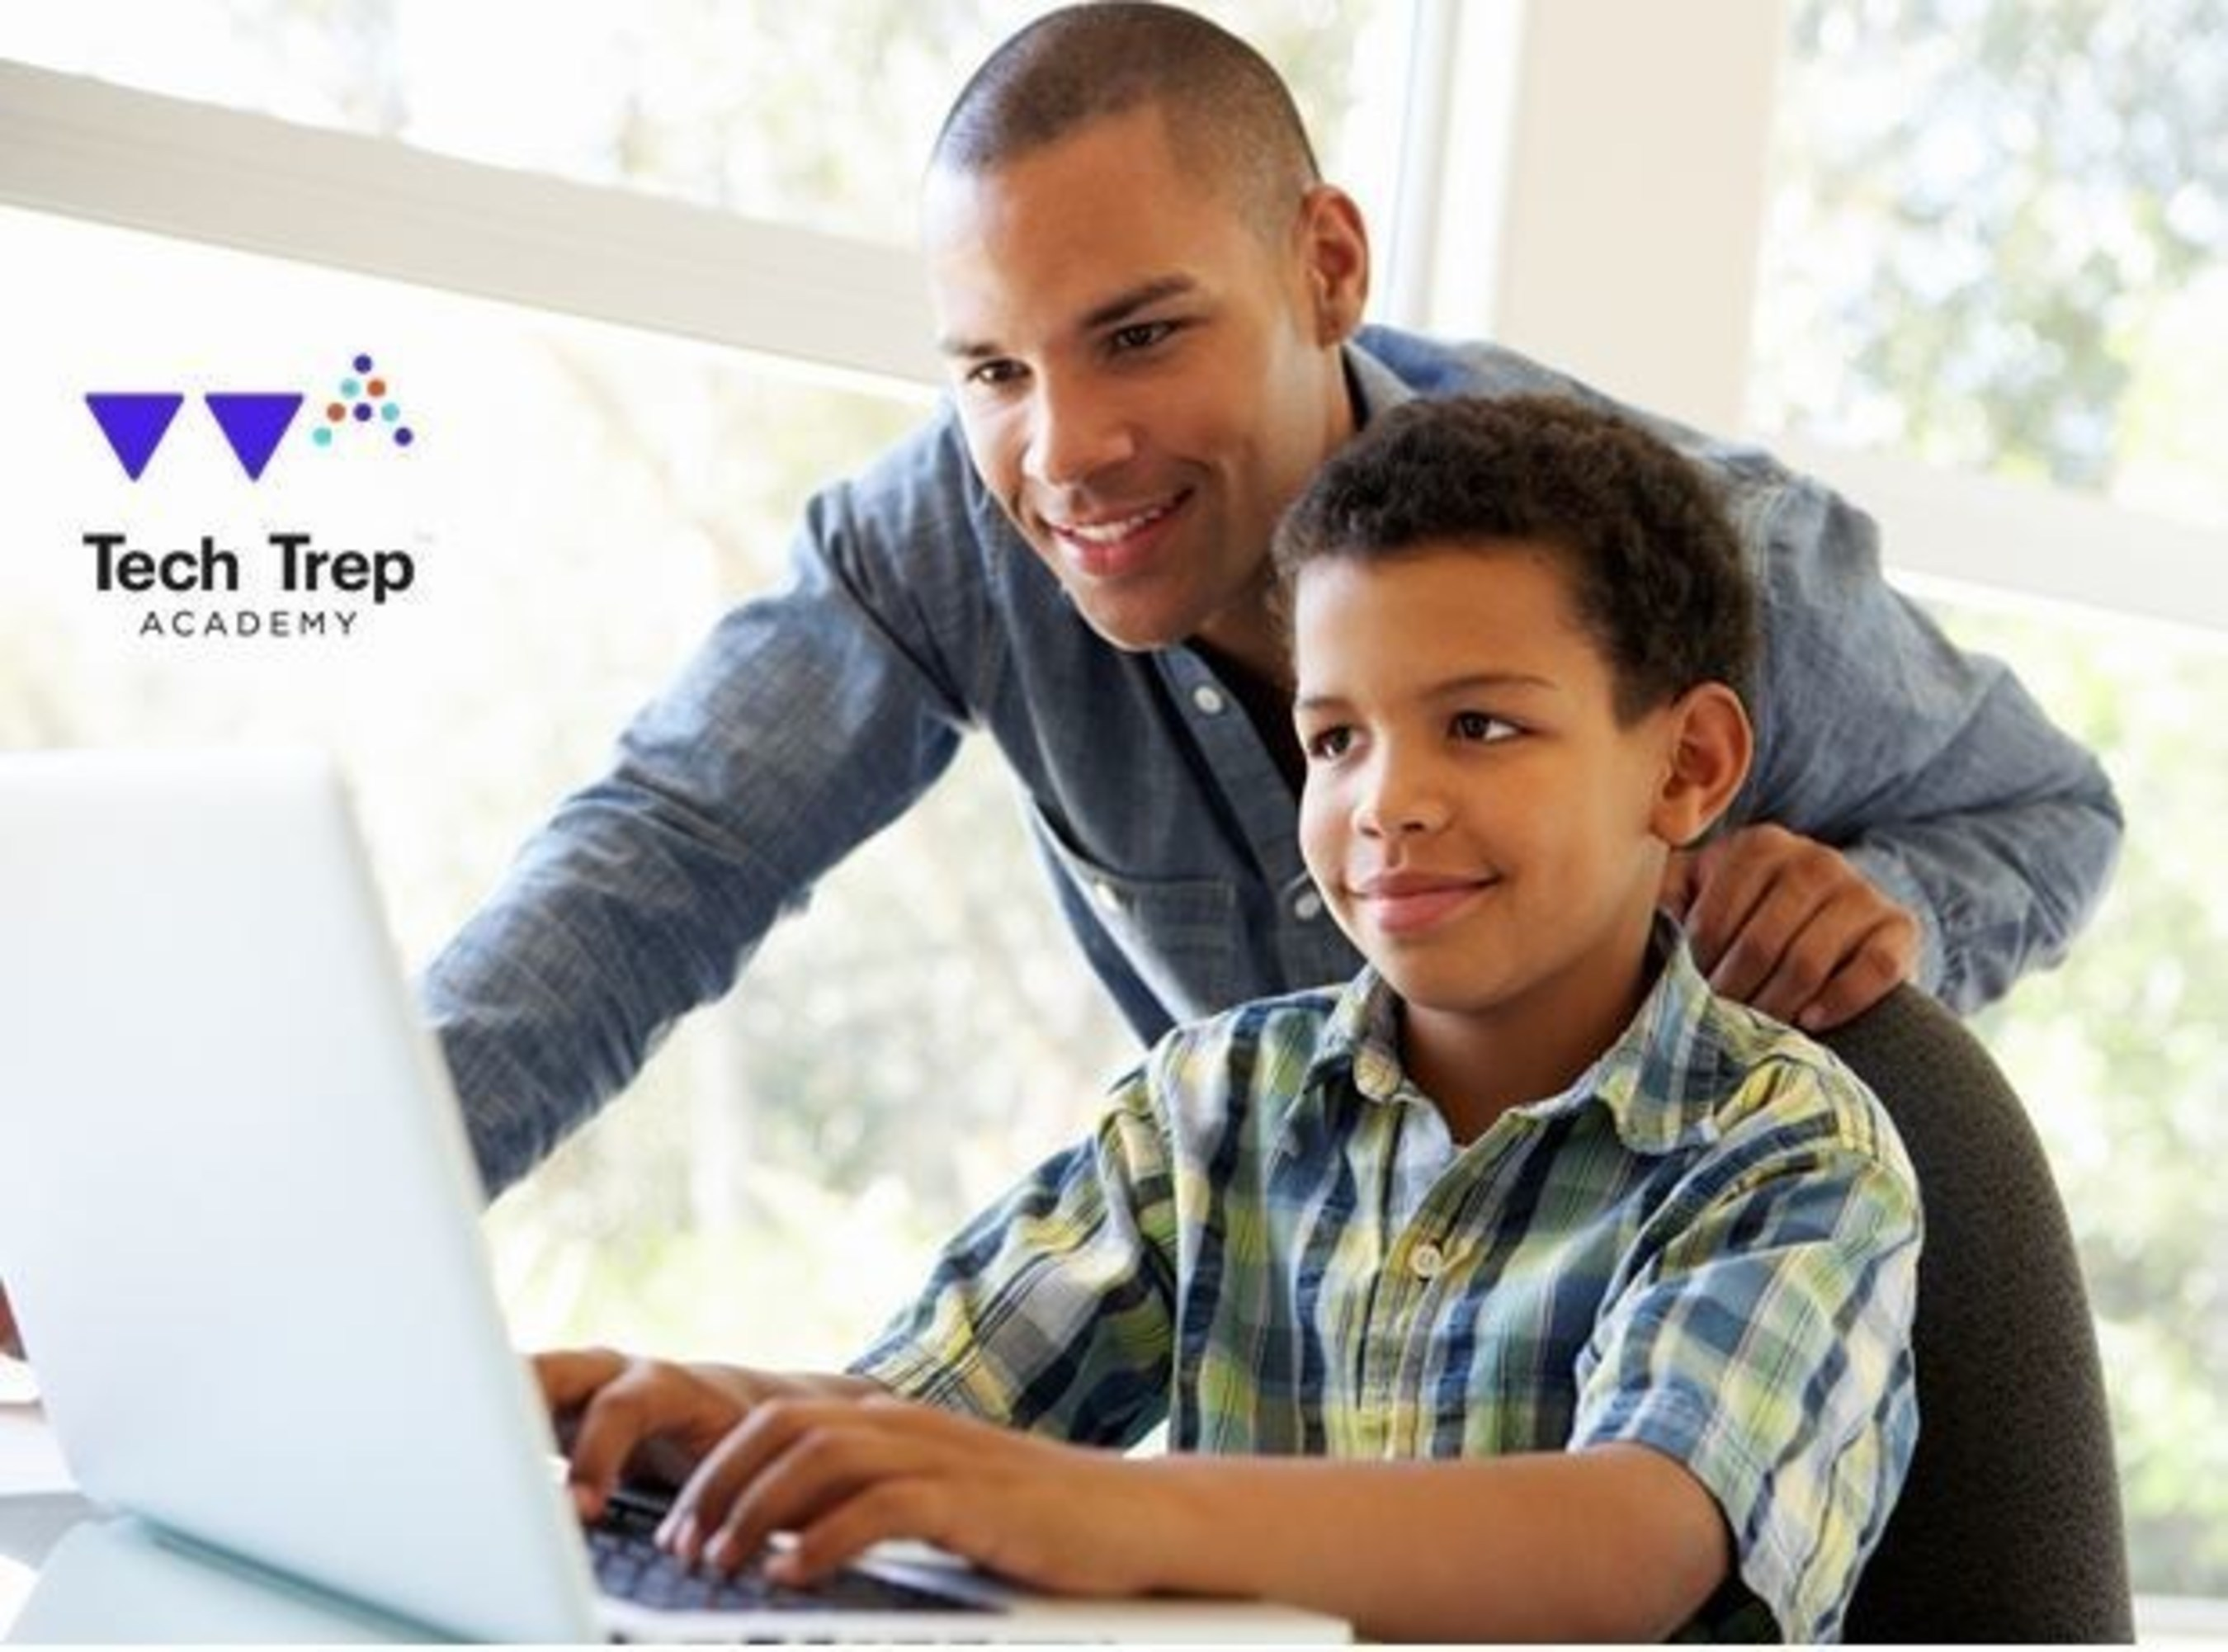 Tech Trep Academy Launches Online Learning Community to Empower Young Technology Enthusiasts and Entrepreneurs